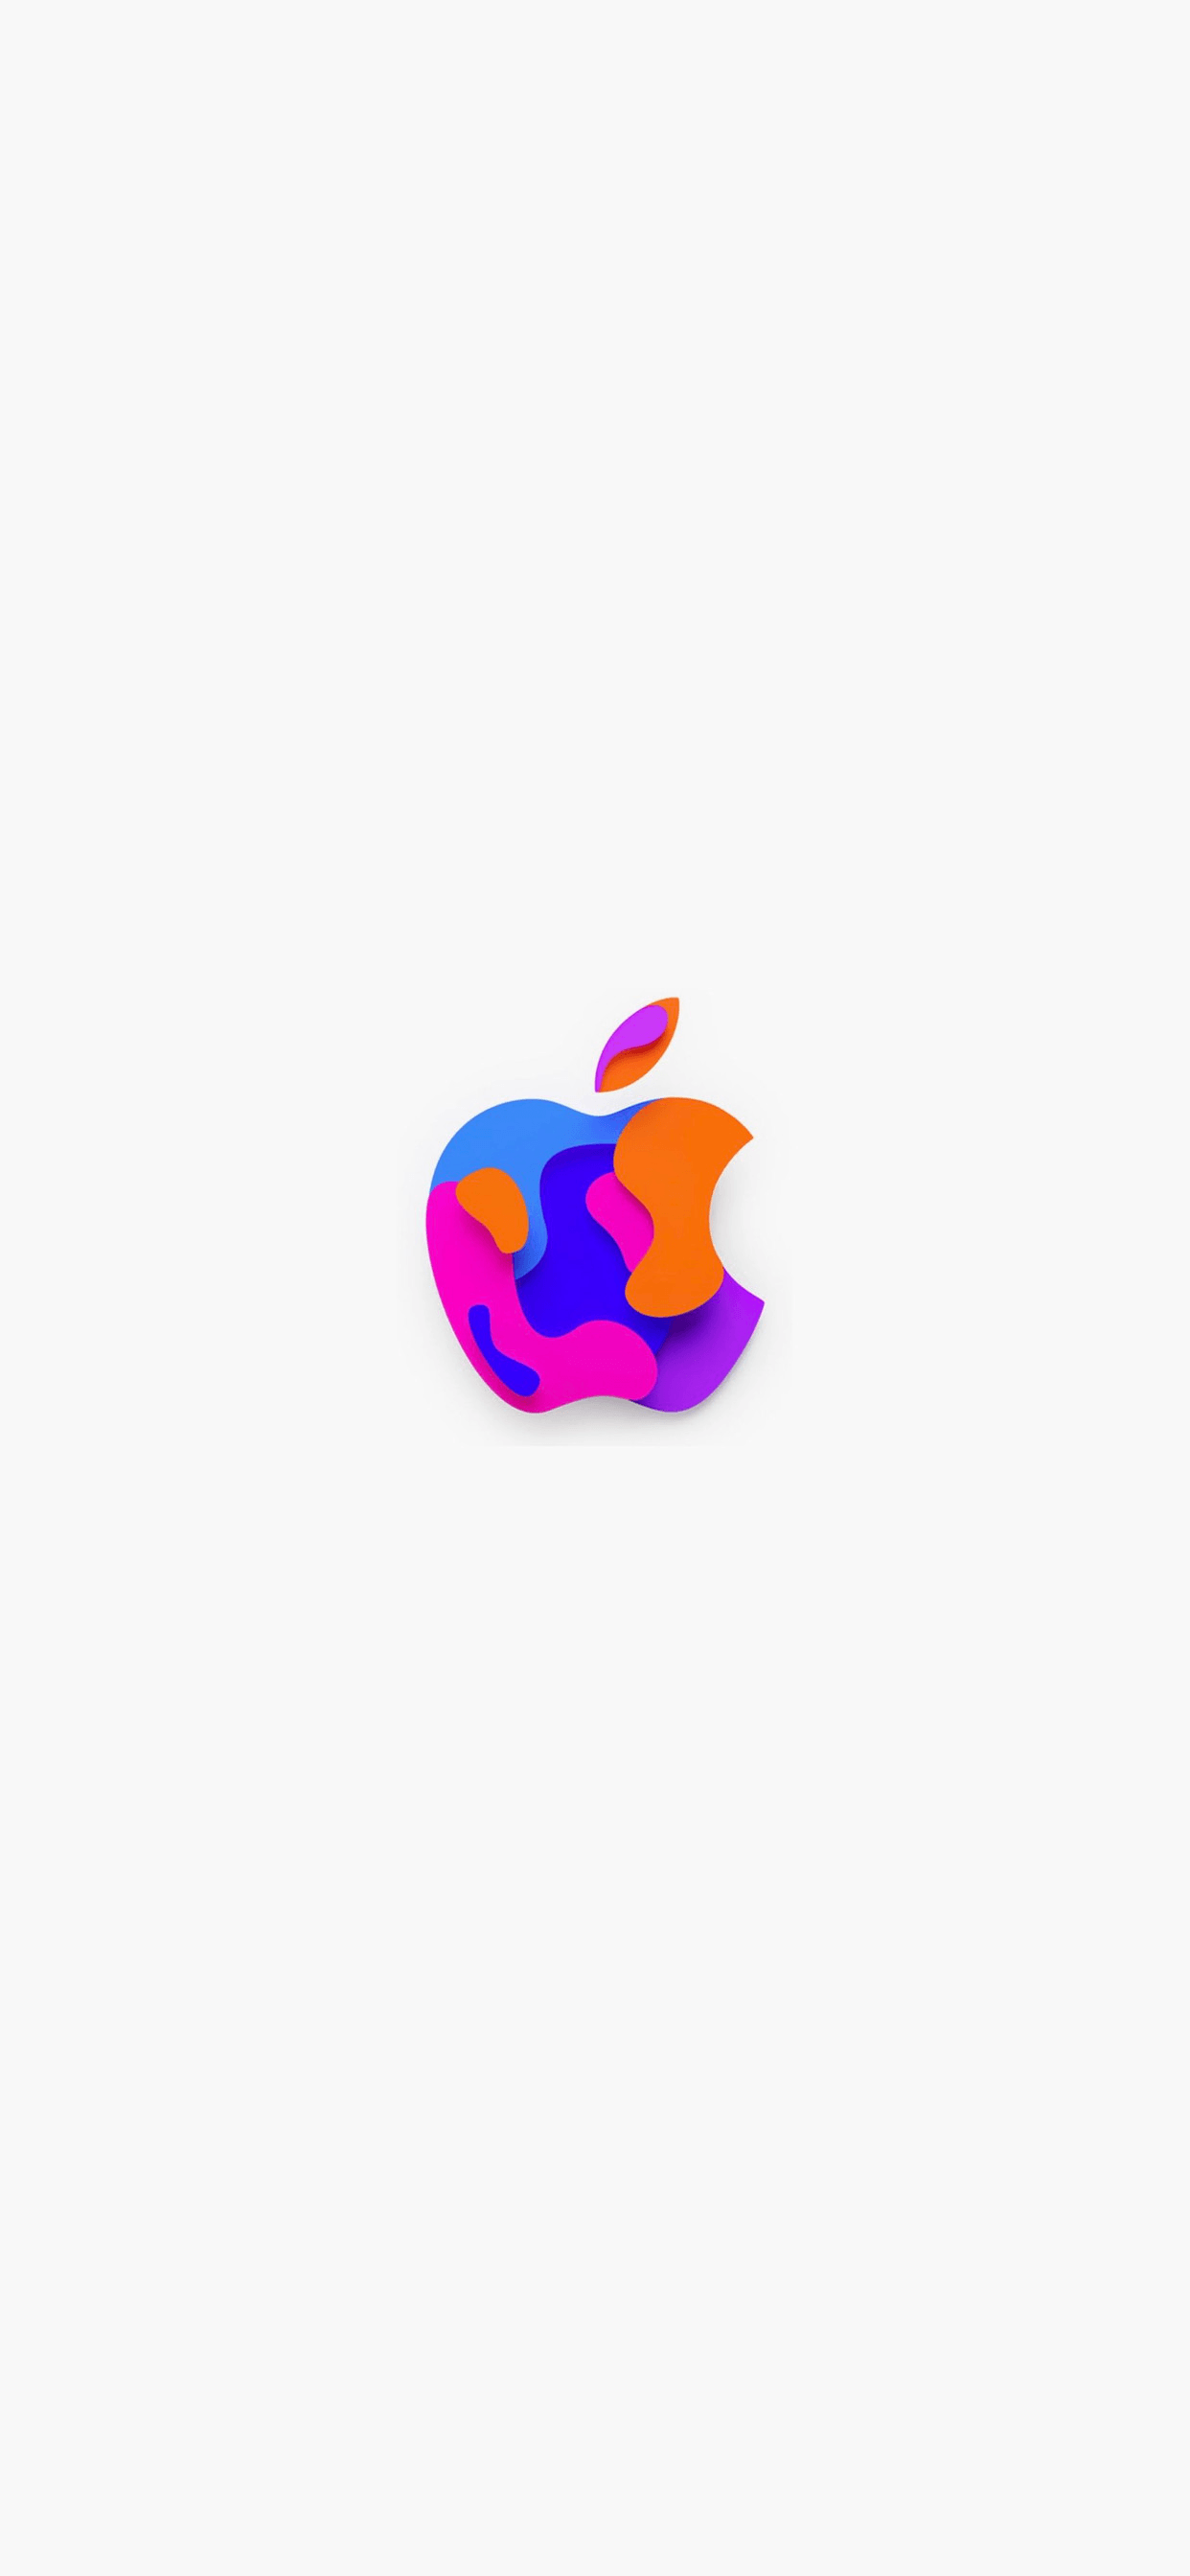 Apple Logo Wallpapers Top Free Apple Logo Backgrounds Wallpaperaccess